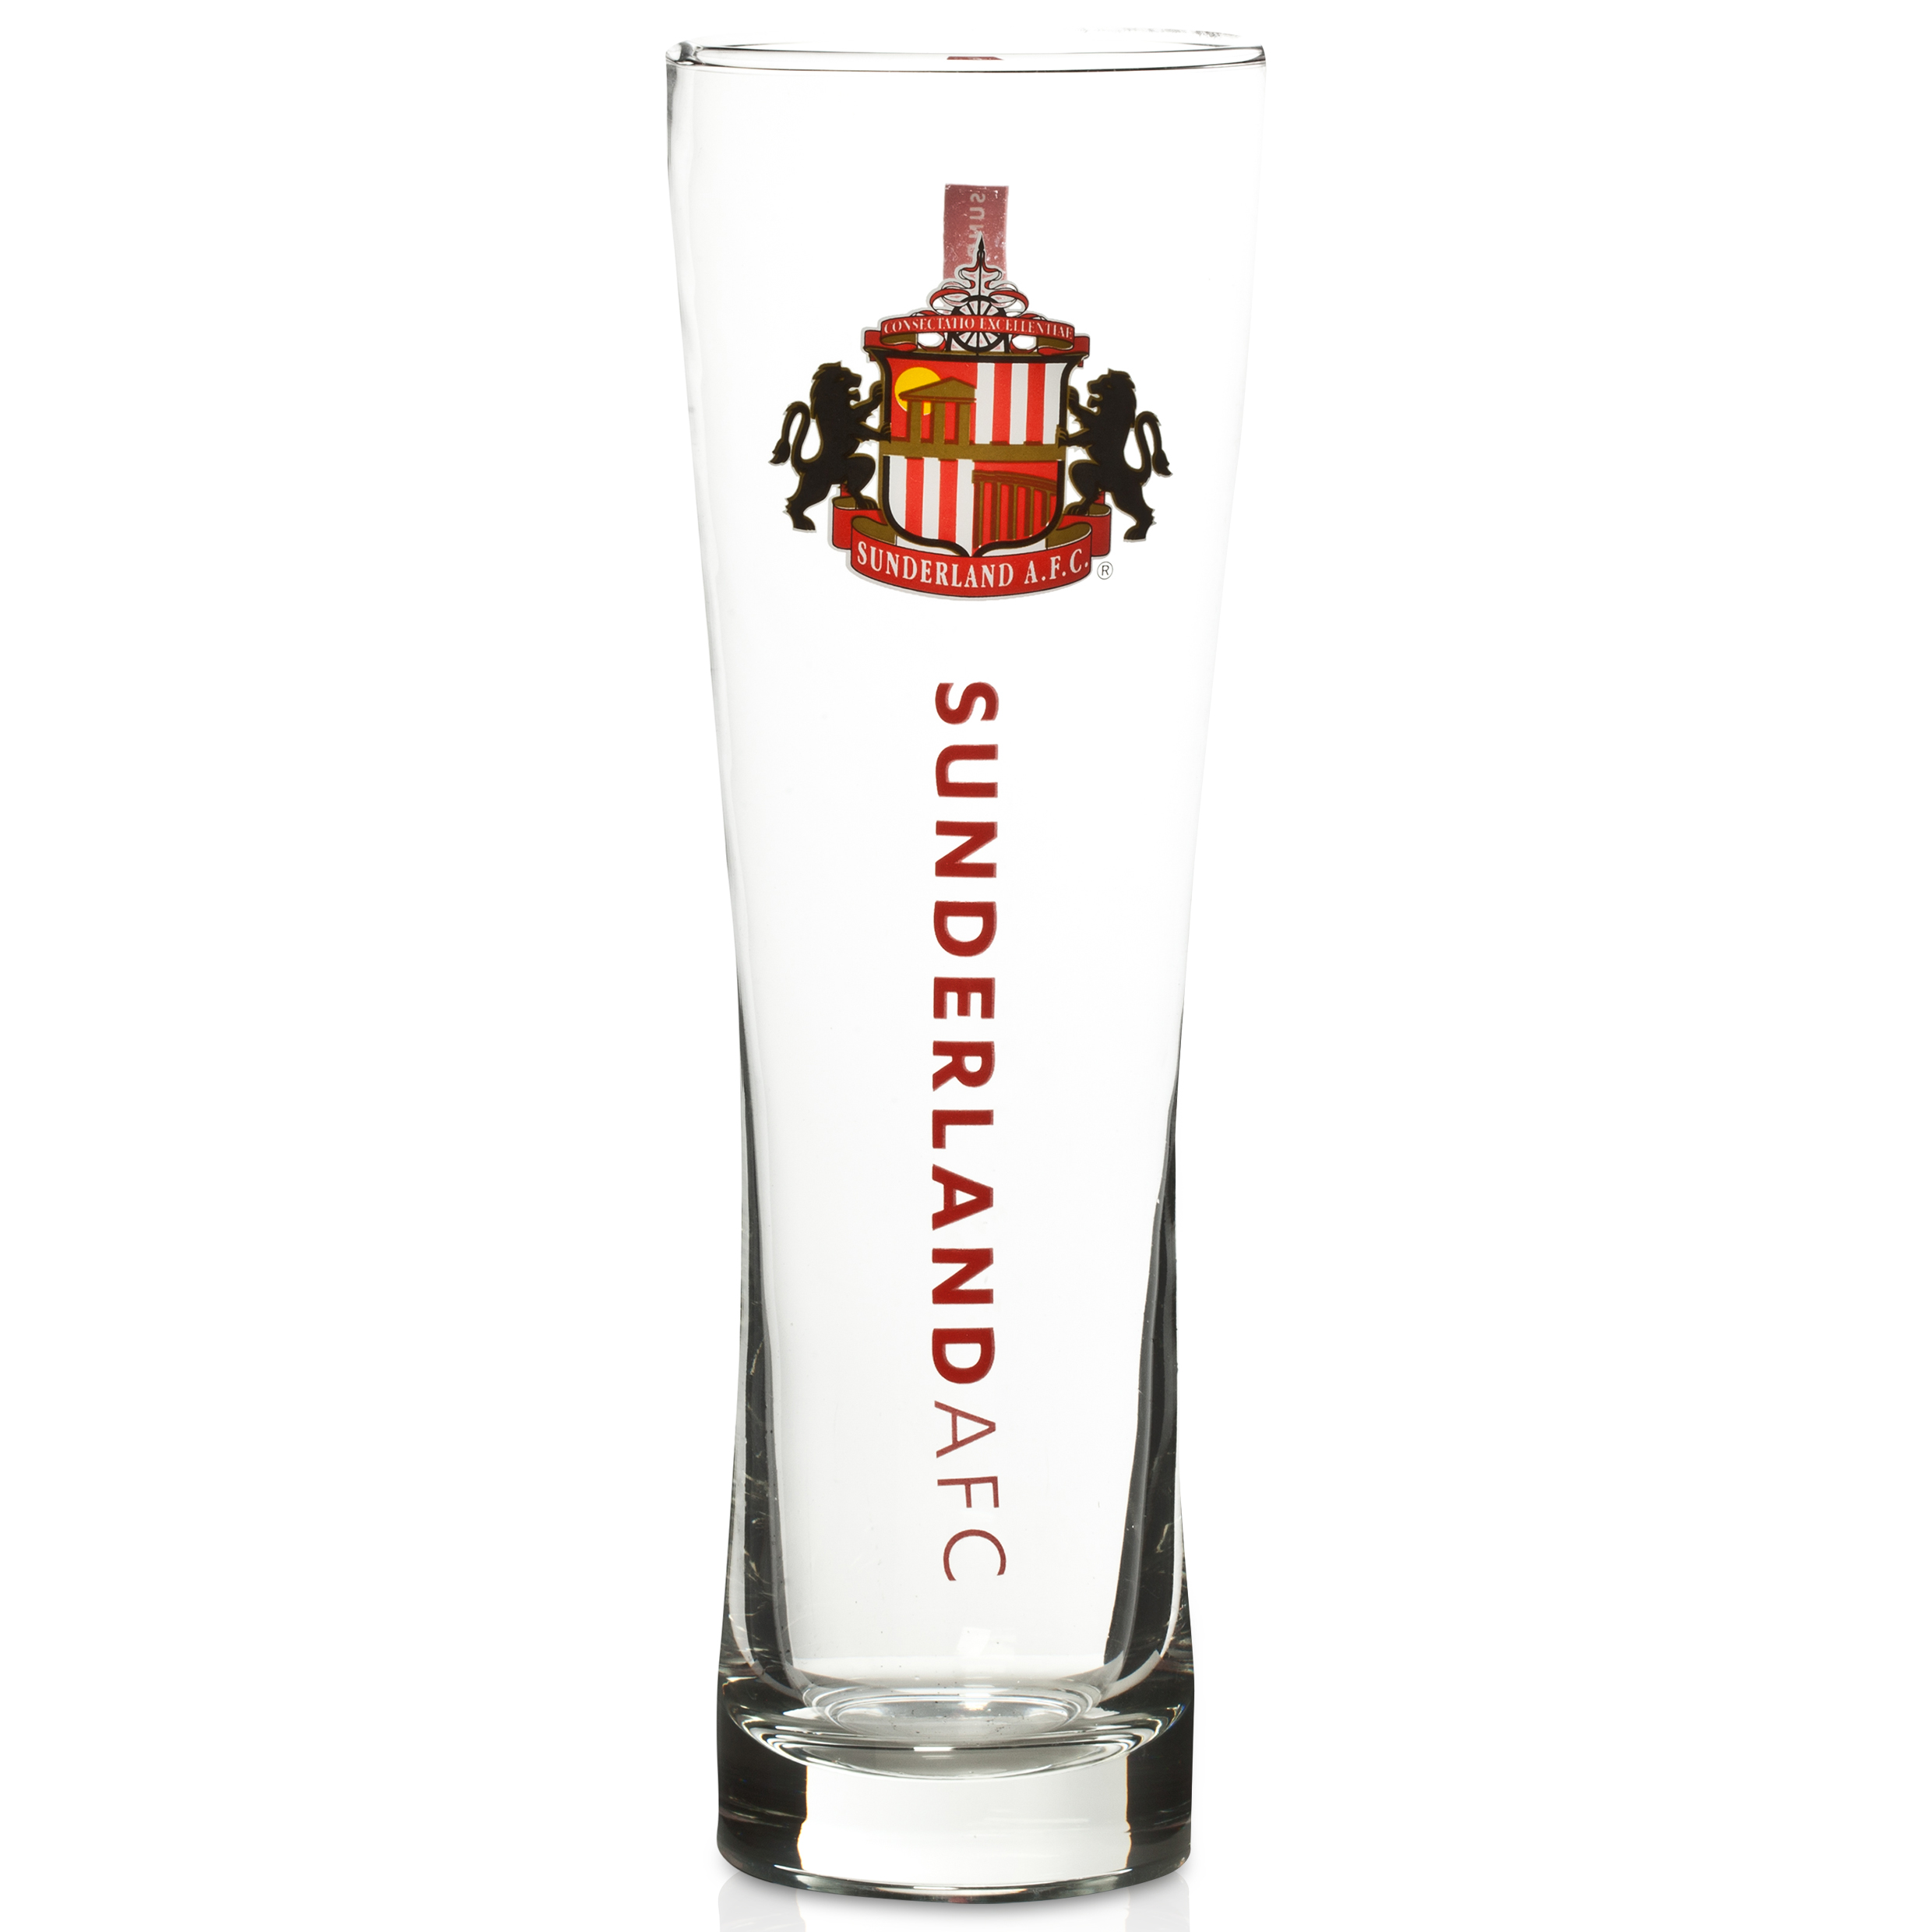 Sunderland Workmark Slim Pint Glass